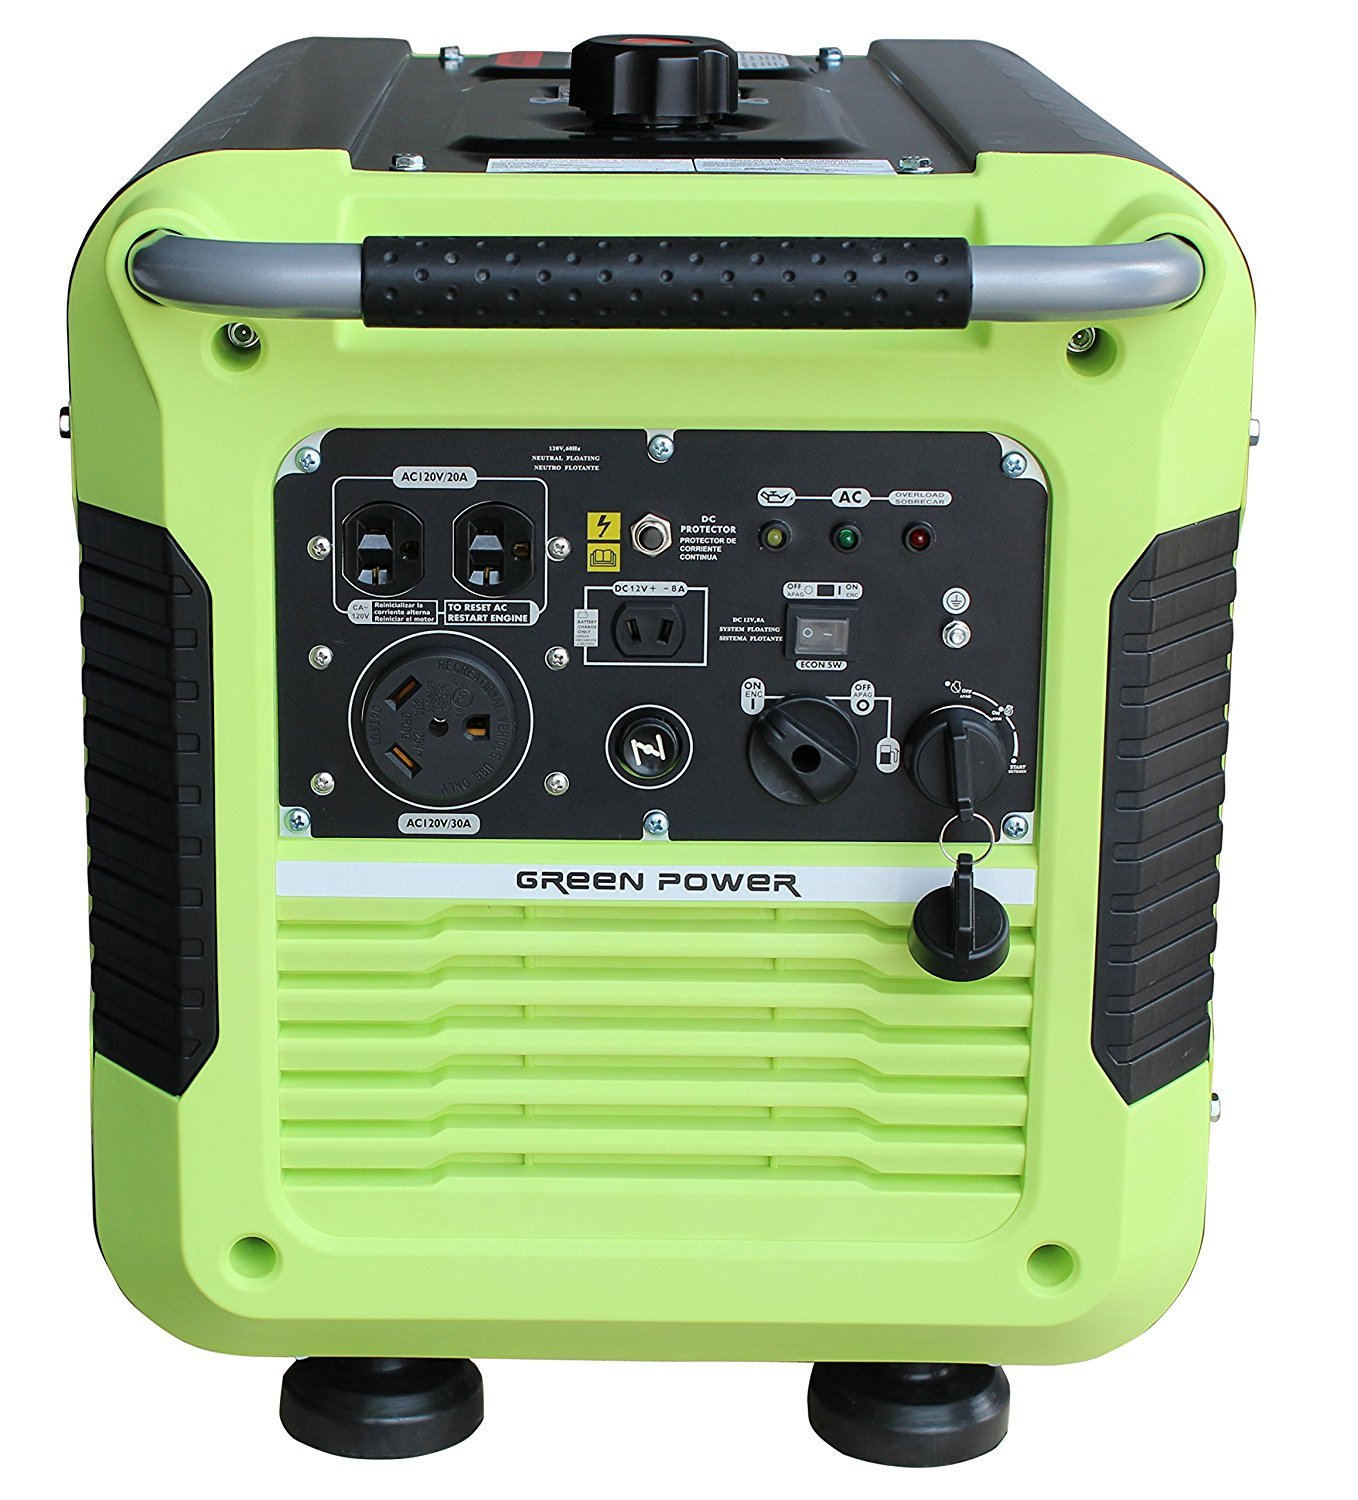 Green-Power America GPG3500iE 3500W Inverter Generator,